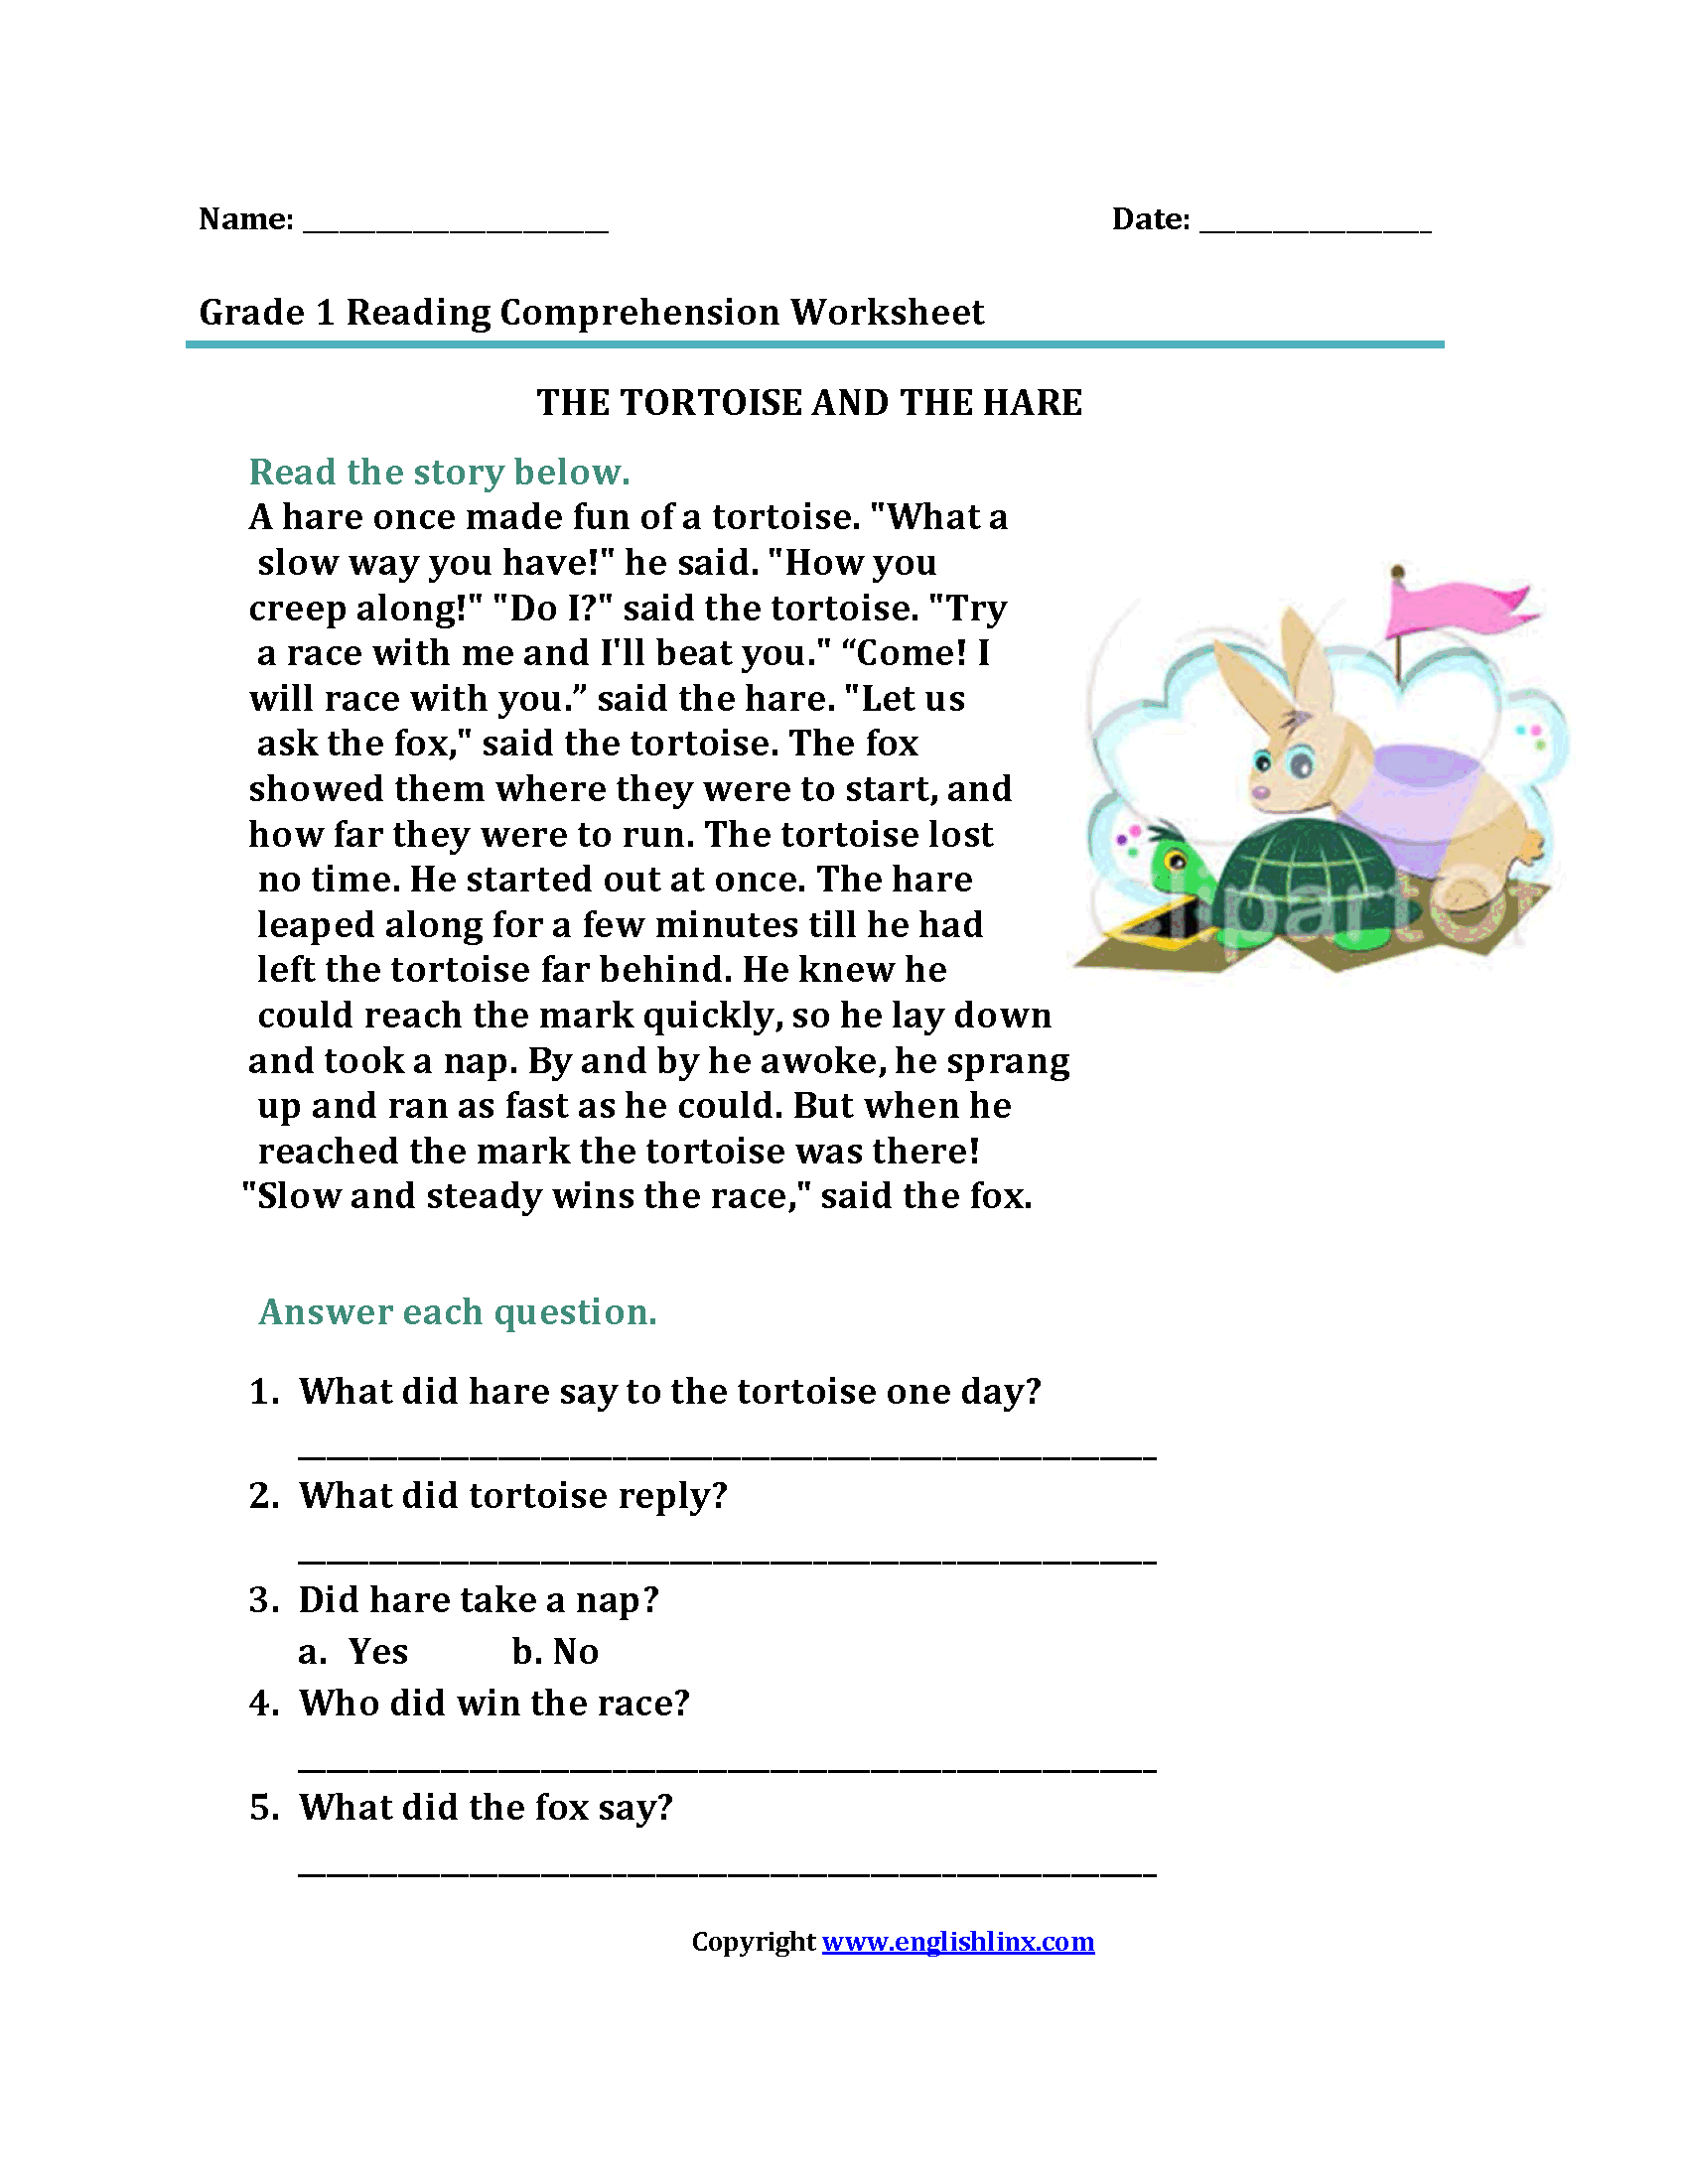 Tortoise And The Hare First Grade Reading Worksheets